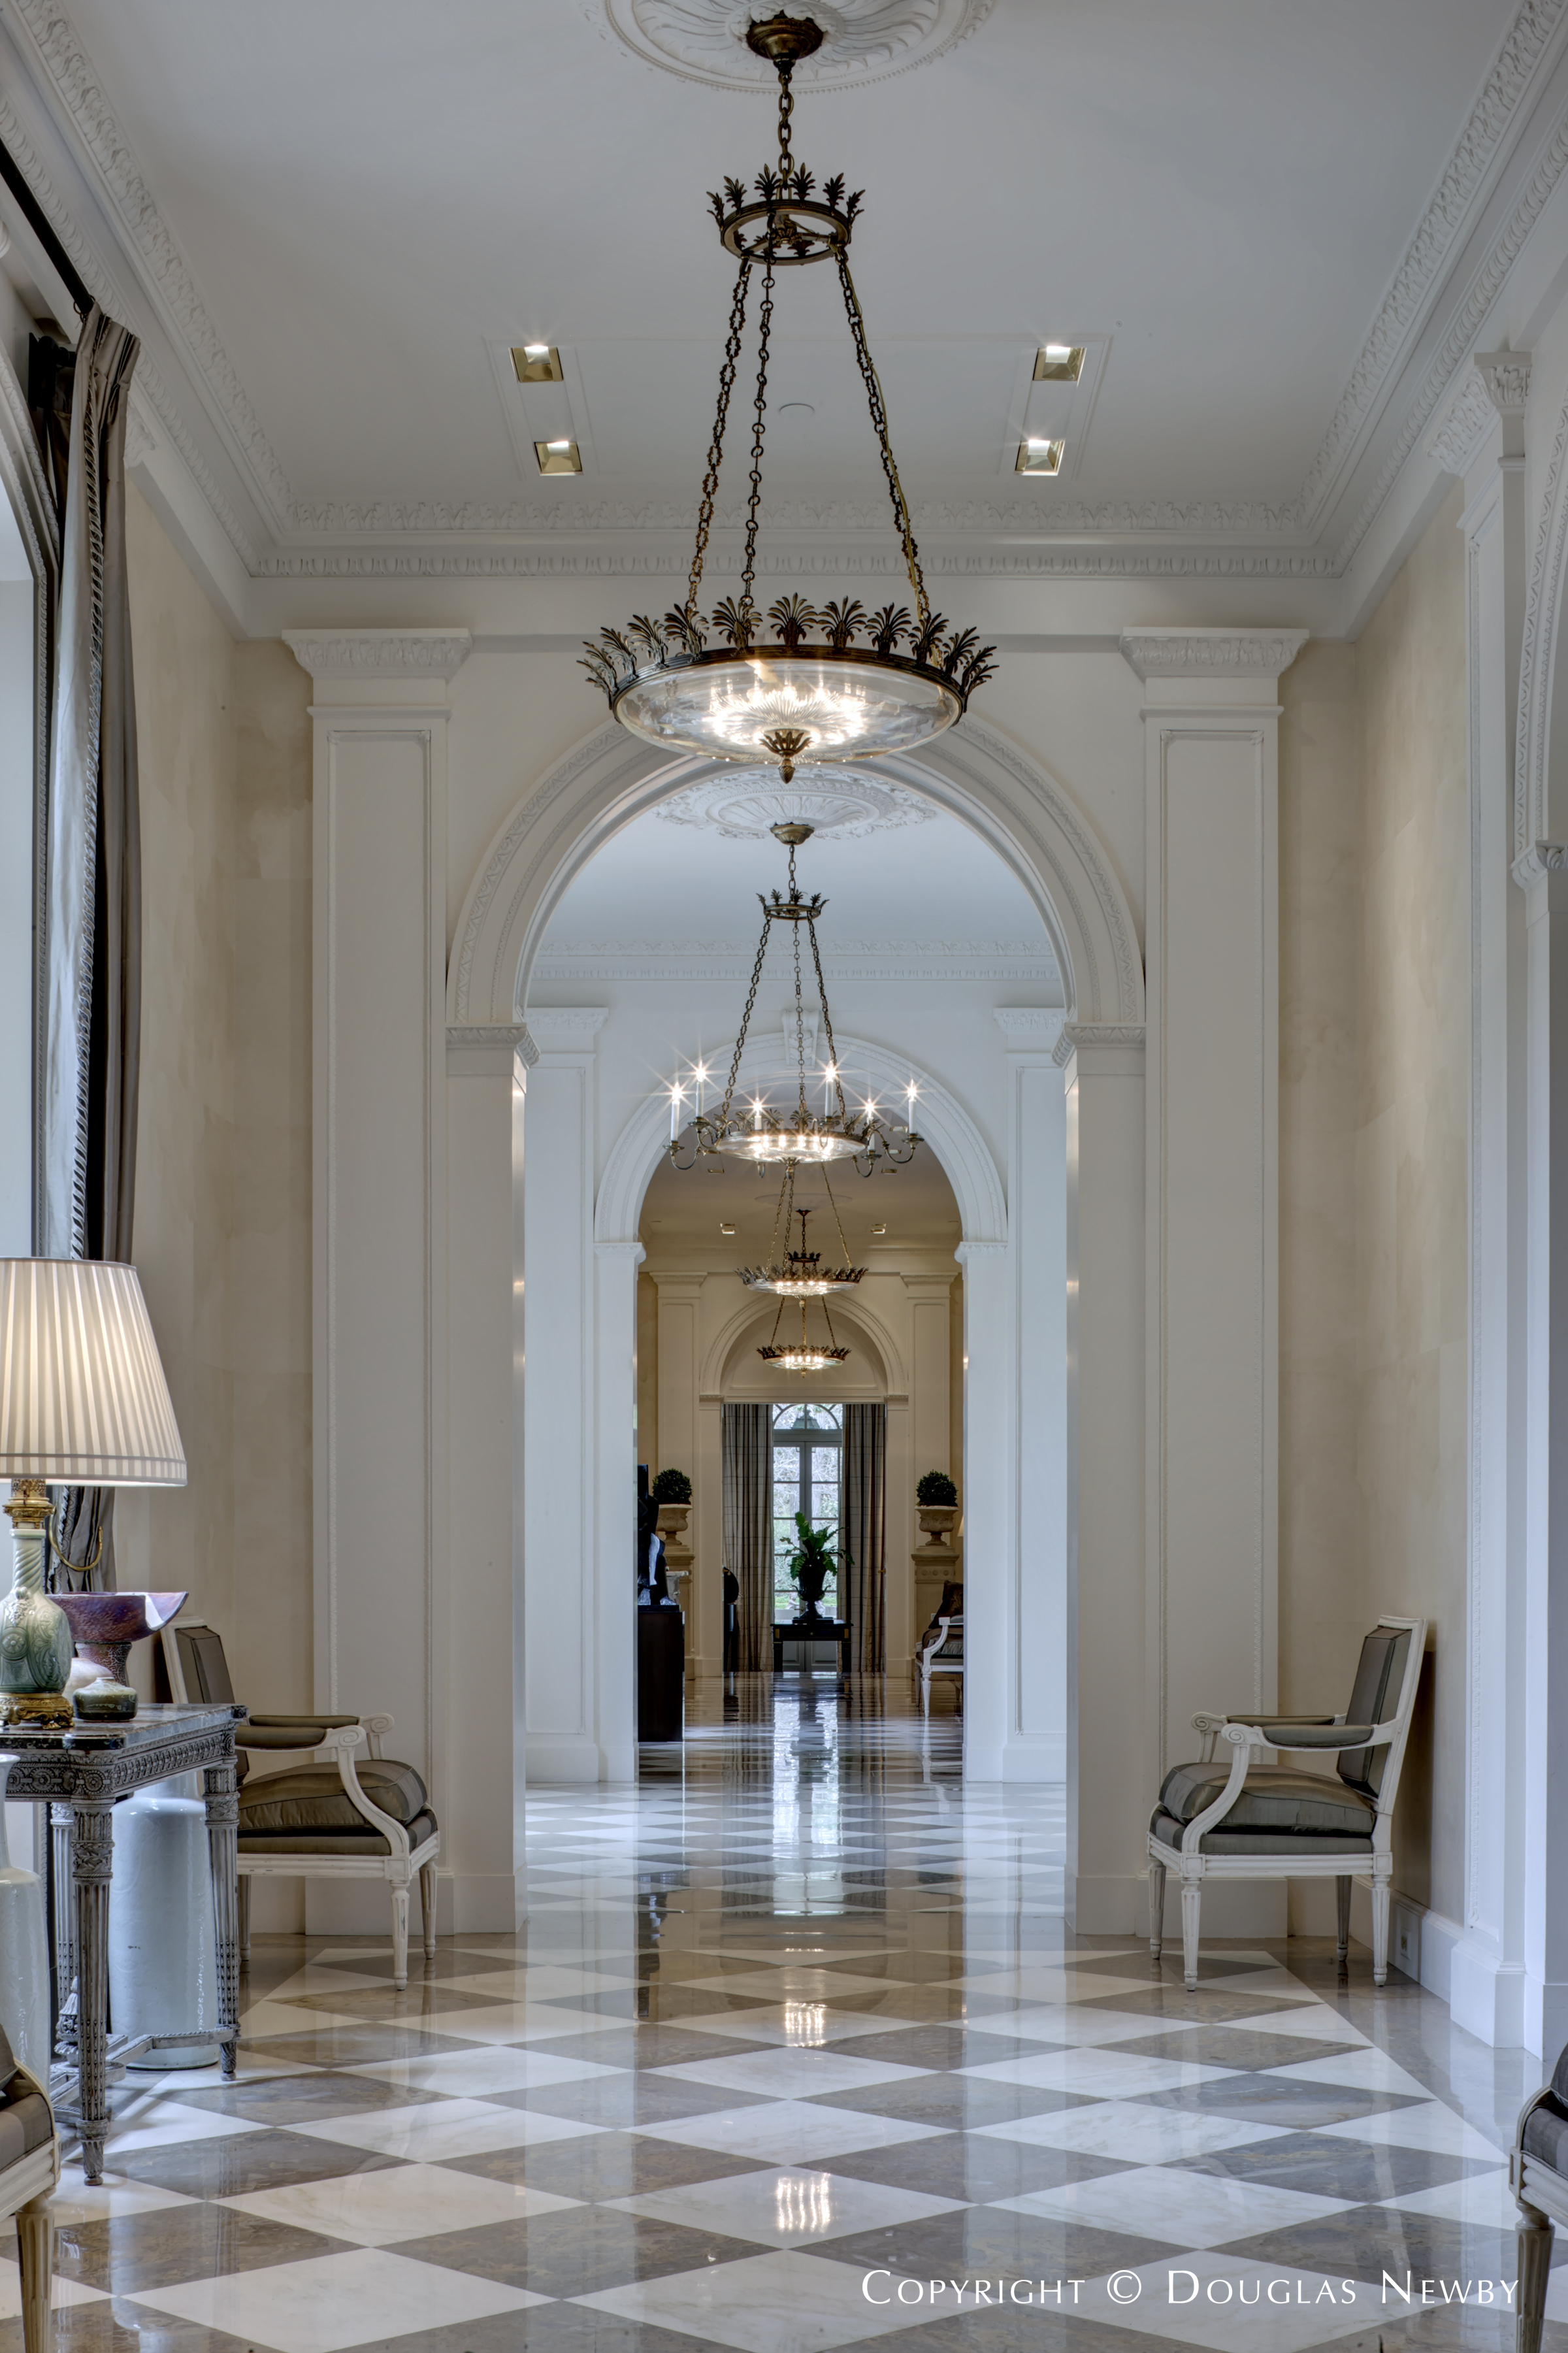 View of a Hallway in the Crespi Hicks Estate Home Showcasing Beautiful Chandeliers